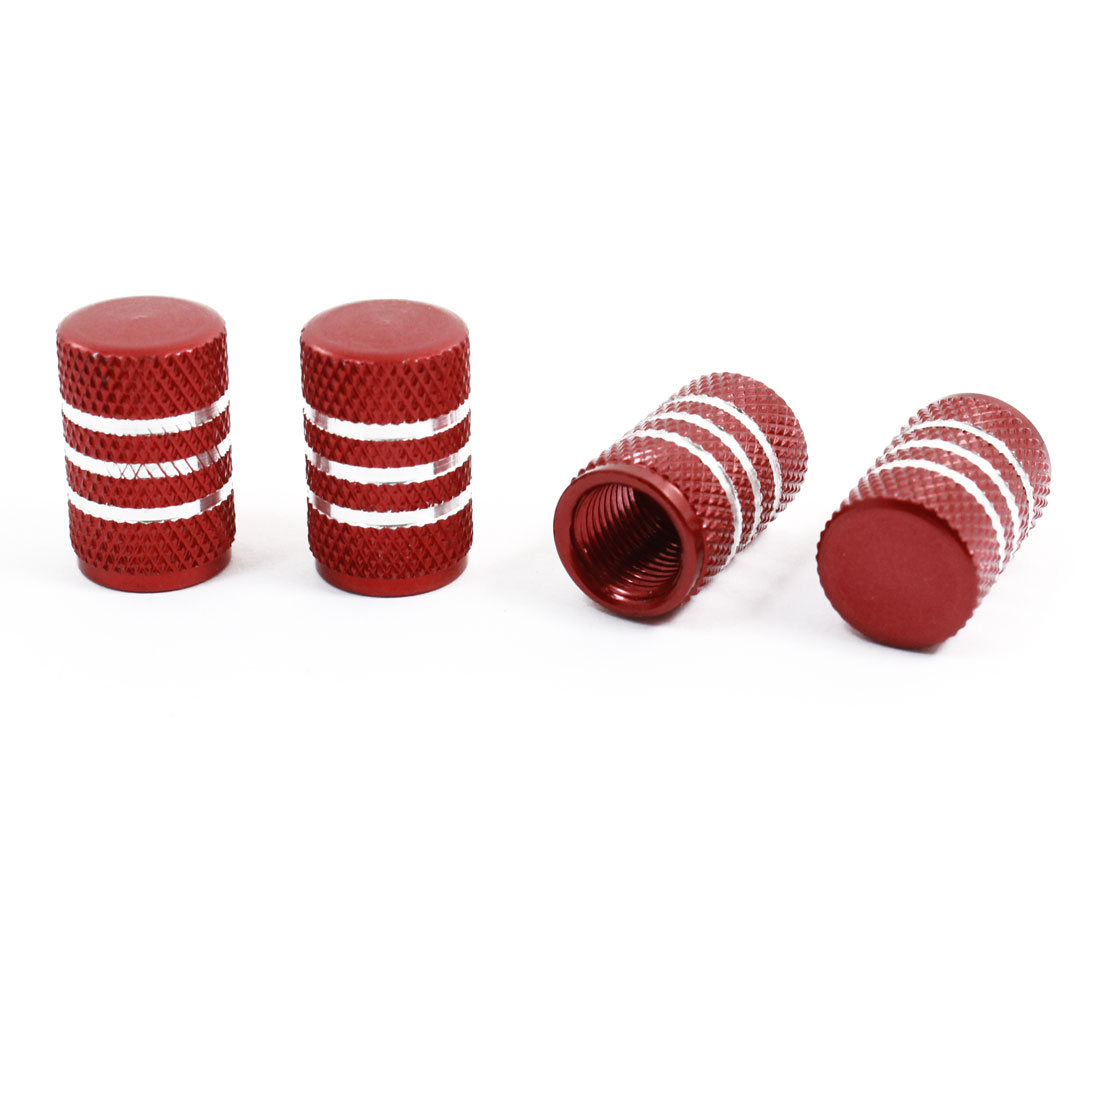 Motorcycle Bike Car Alloy Tire Tyre Wheel Valve Stem Dust Caps Cover Red 4 Pcs